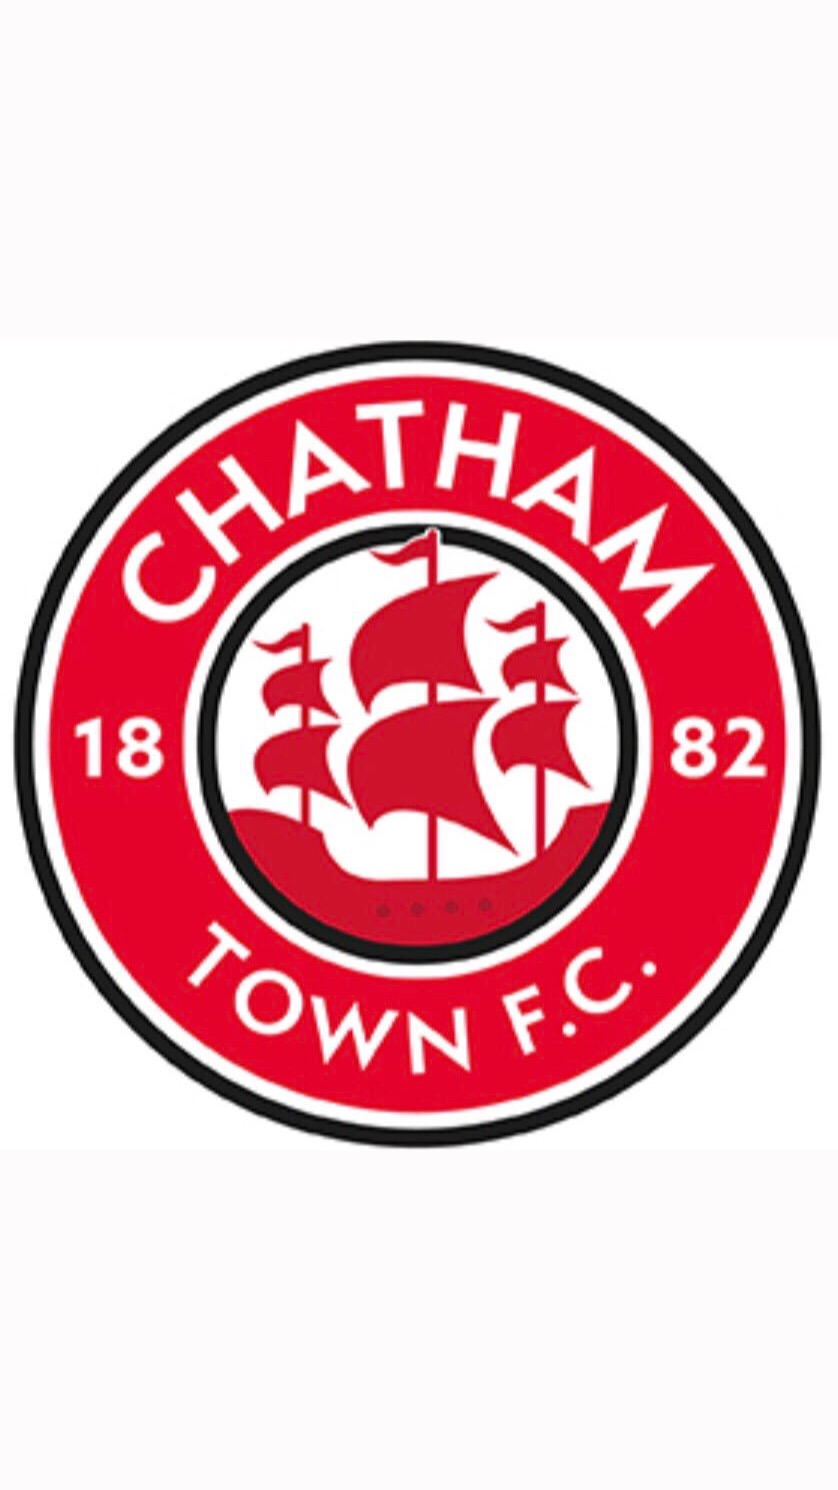 Club Image for Chatham Town FC